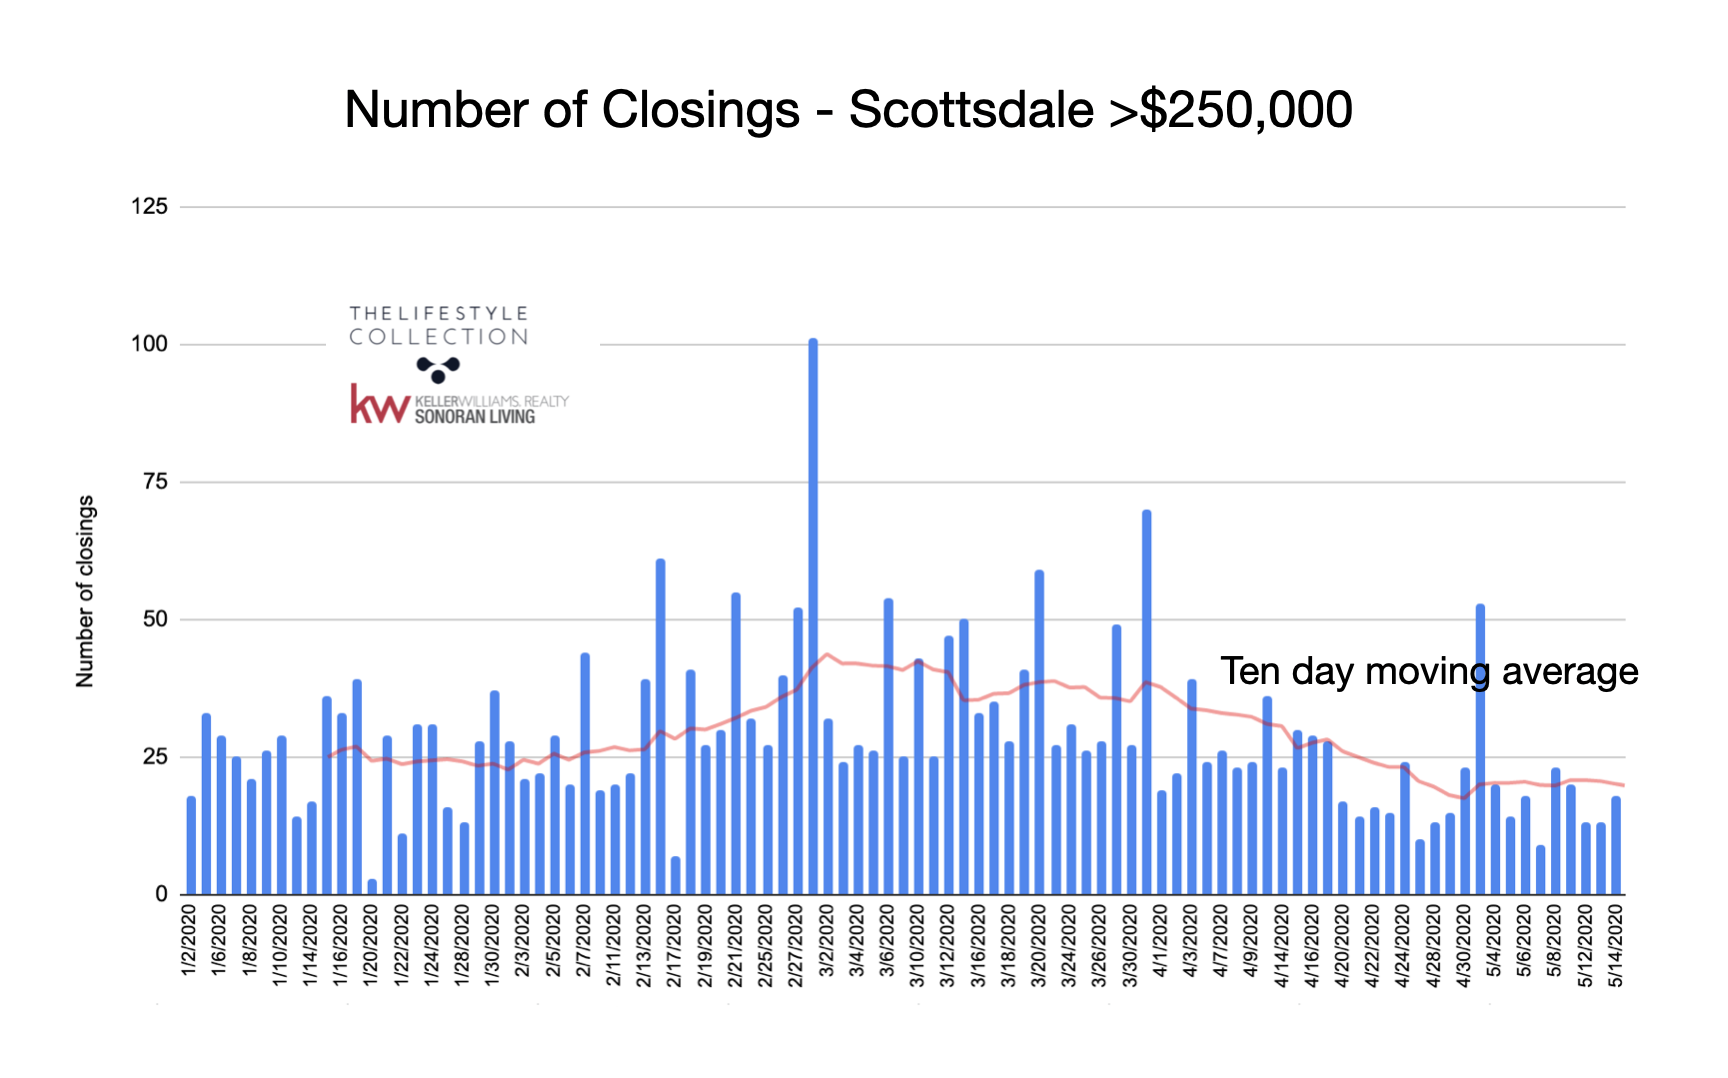 Scottsdale real estate closing information